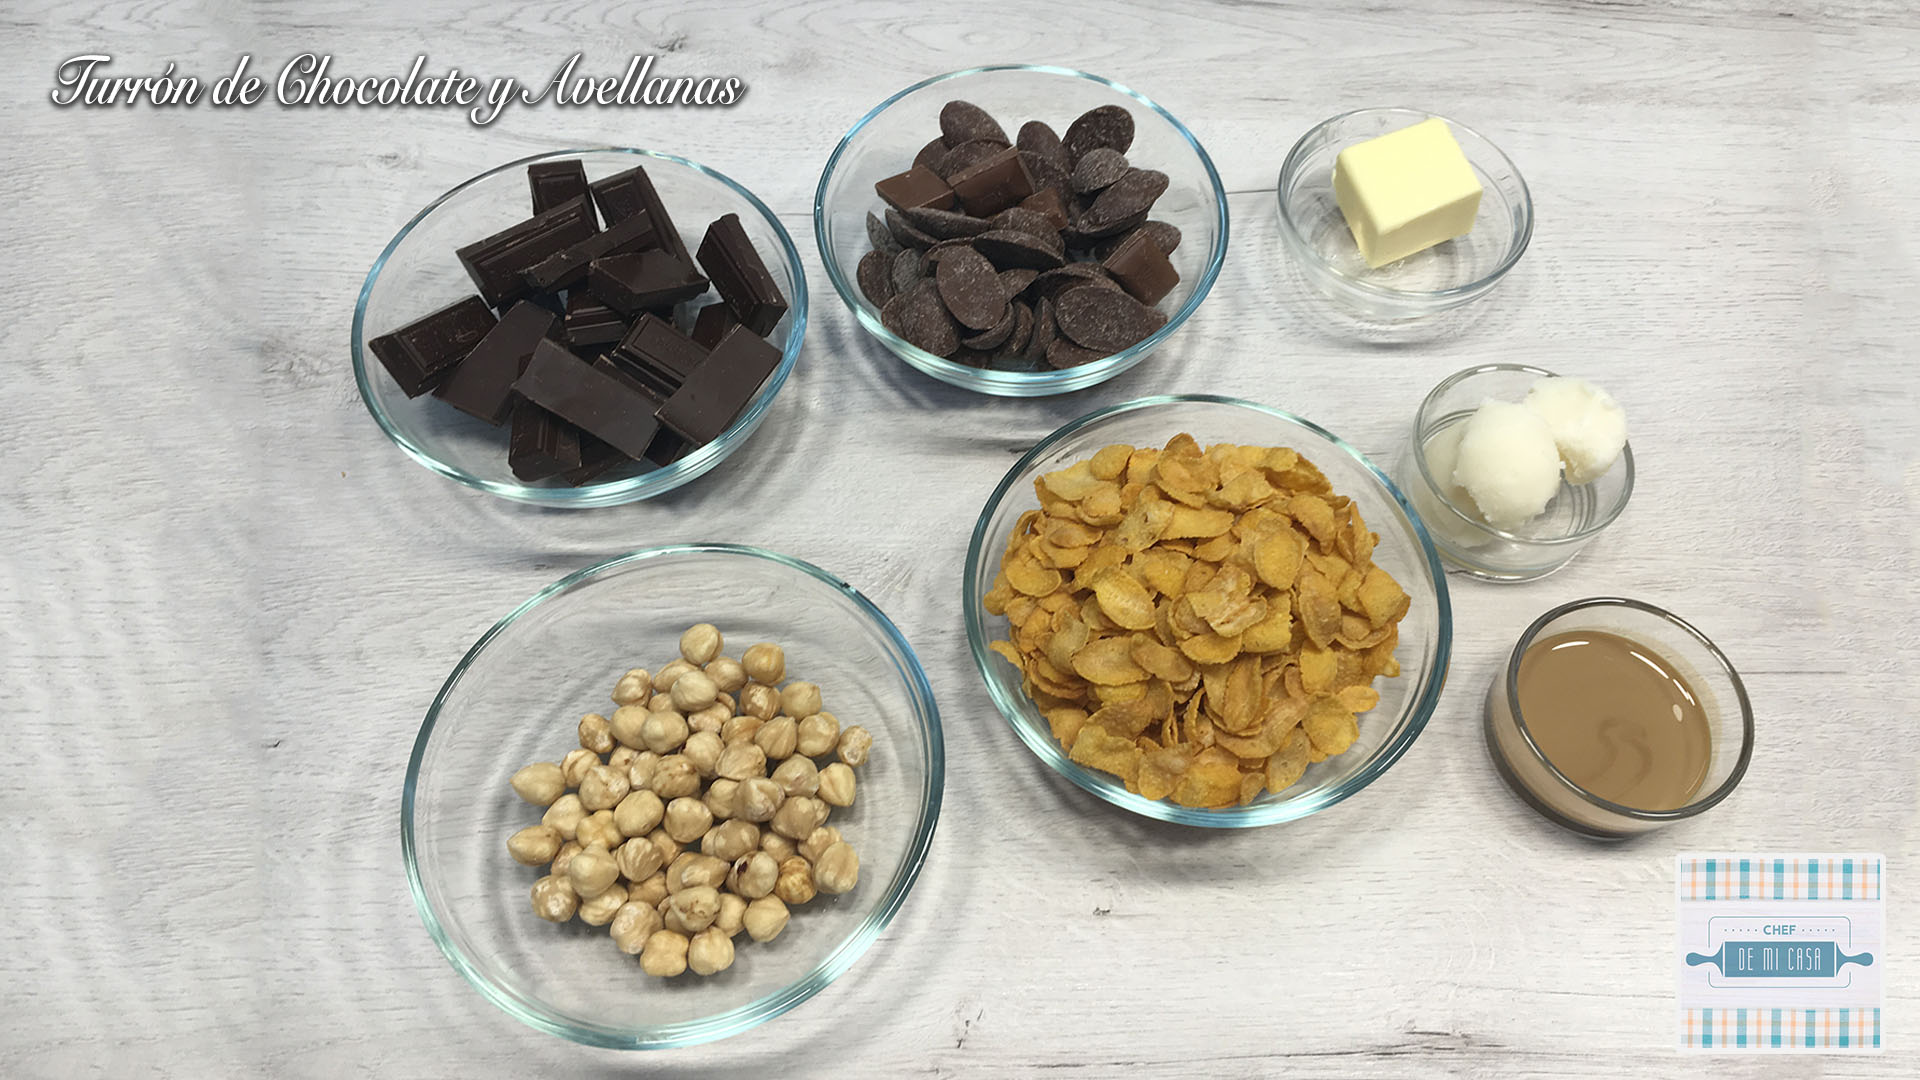 Ingredientes Turrón de Chocolate y Avellanas